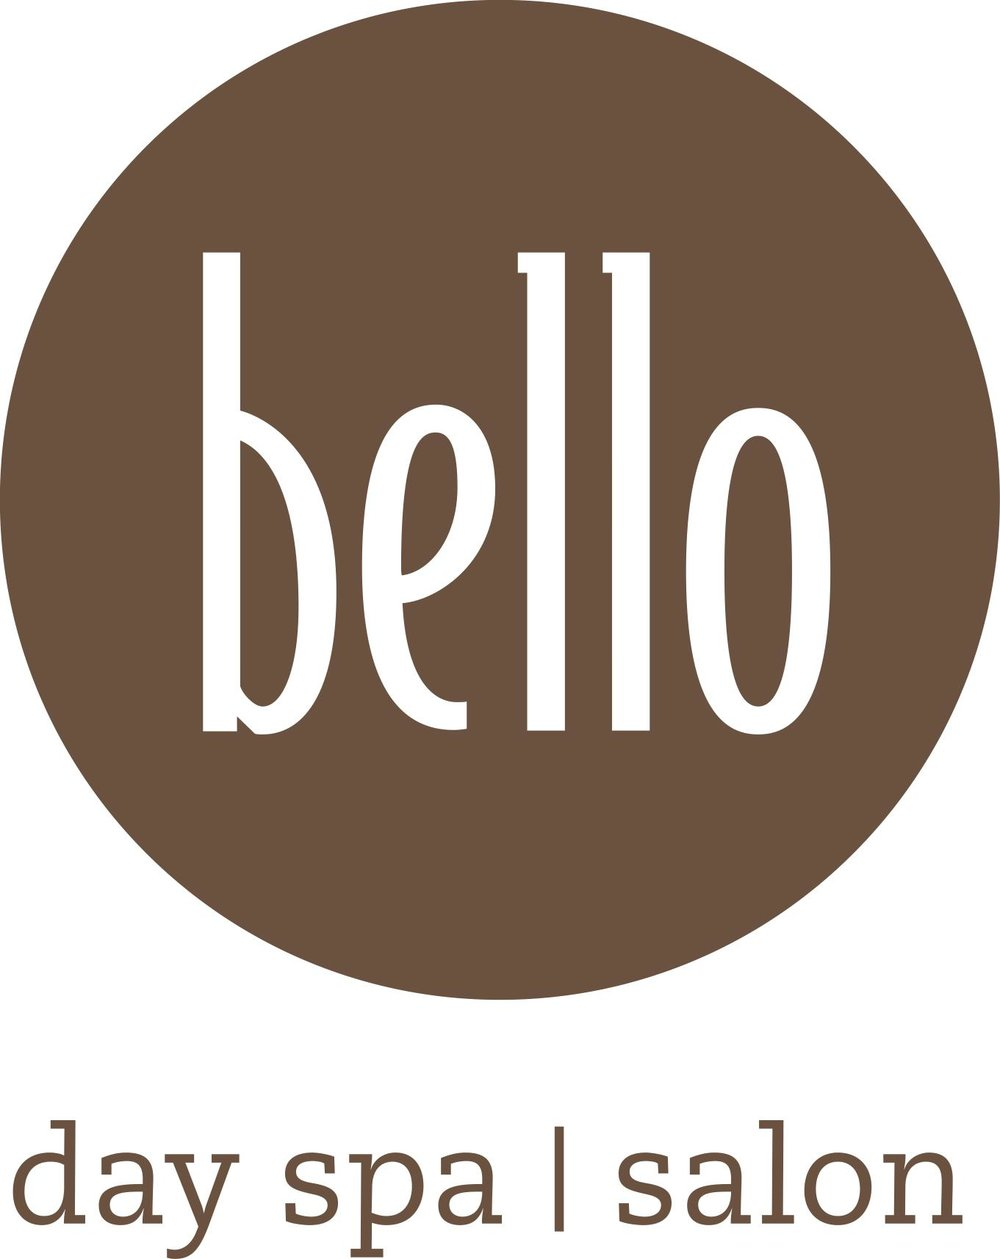 Find us at  Bello Day Spa  in Eugene, Oregon with Stacey Colon!